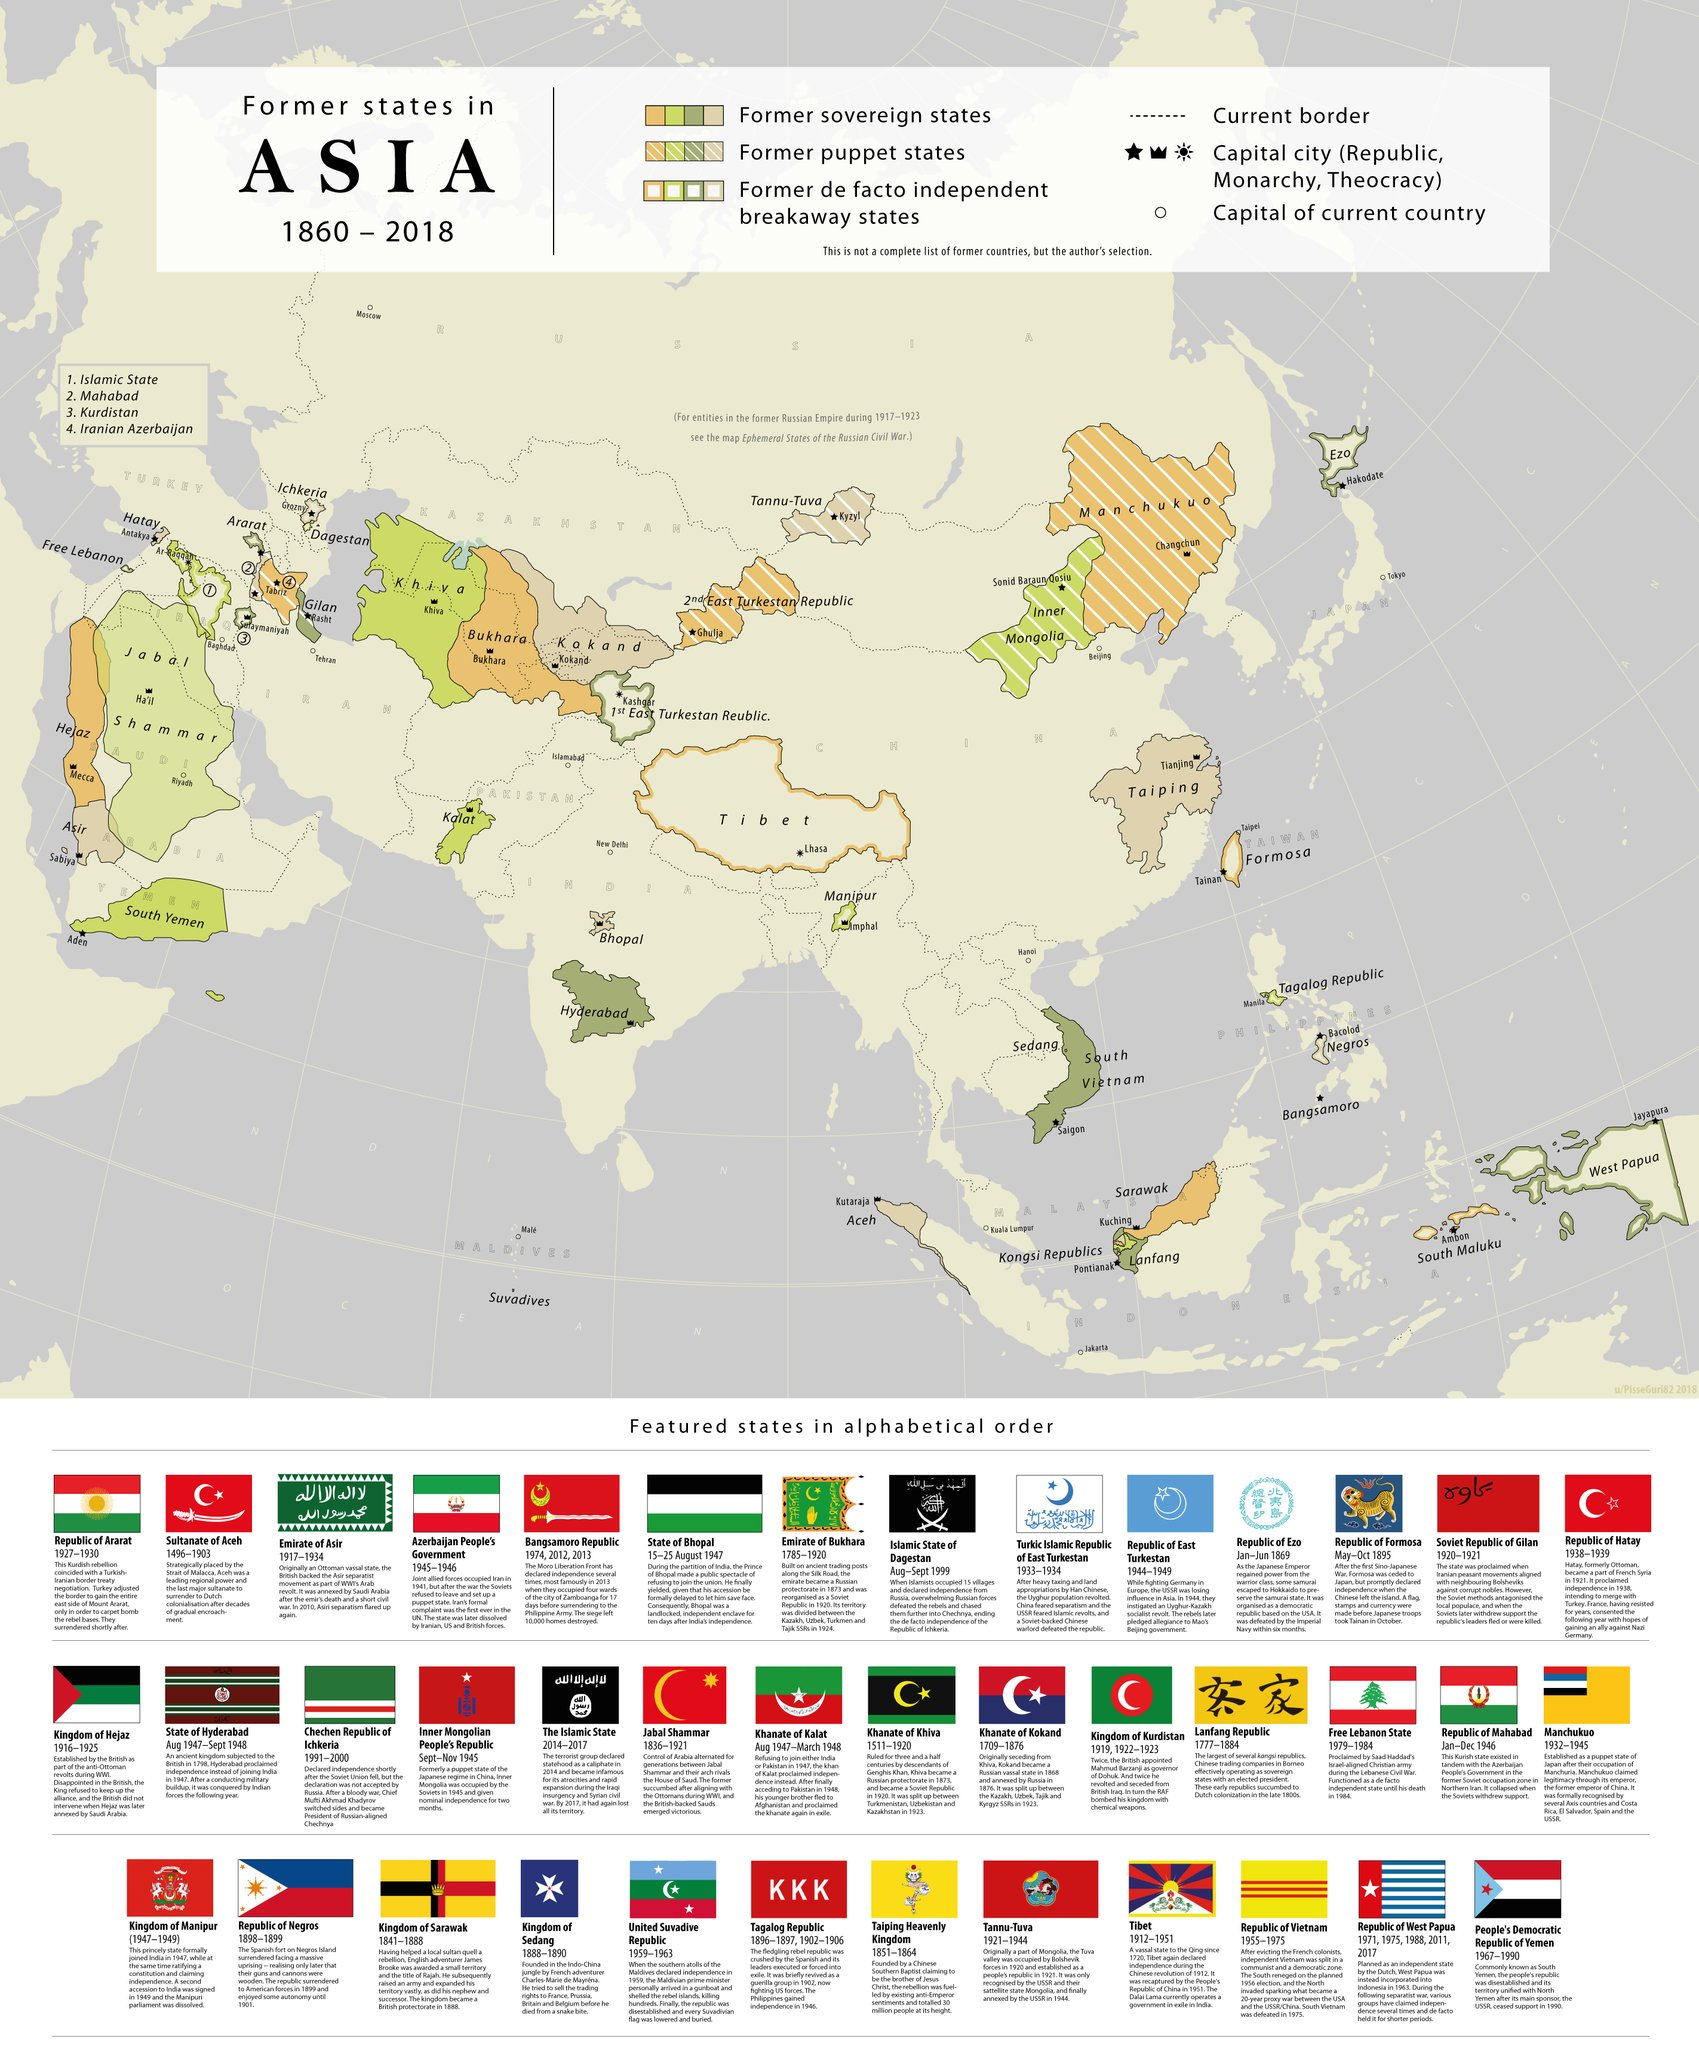 Former states in Asia (1860 - 2018)